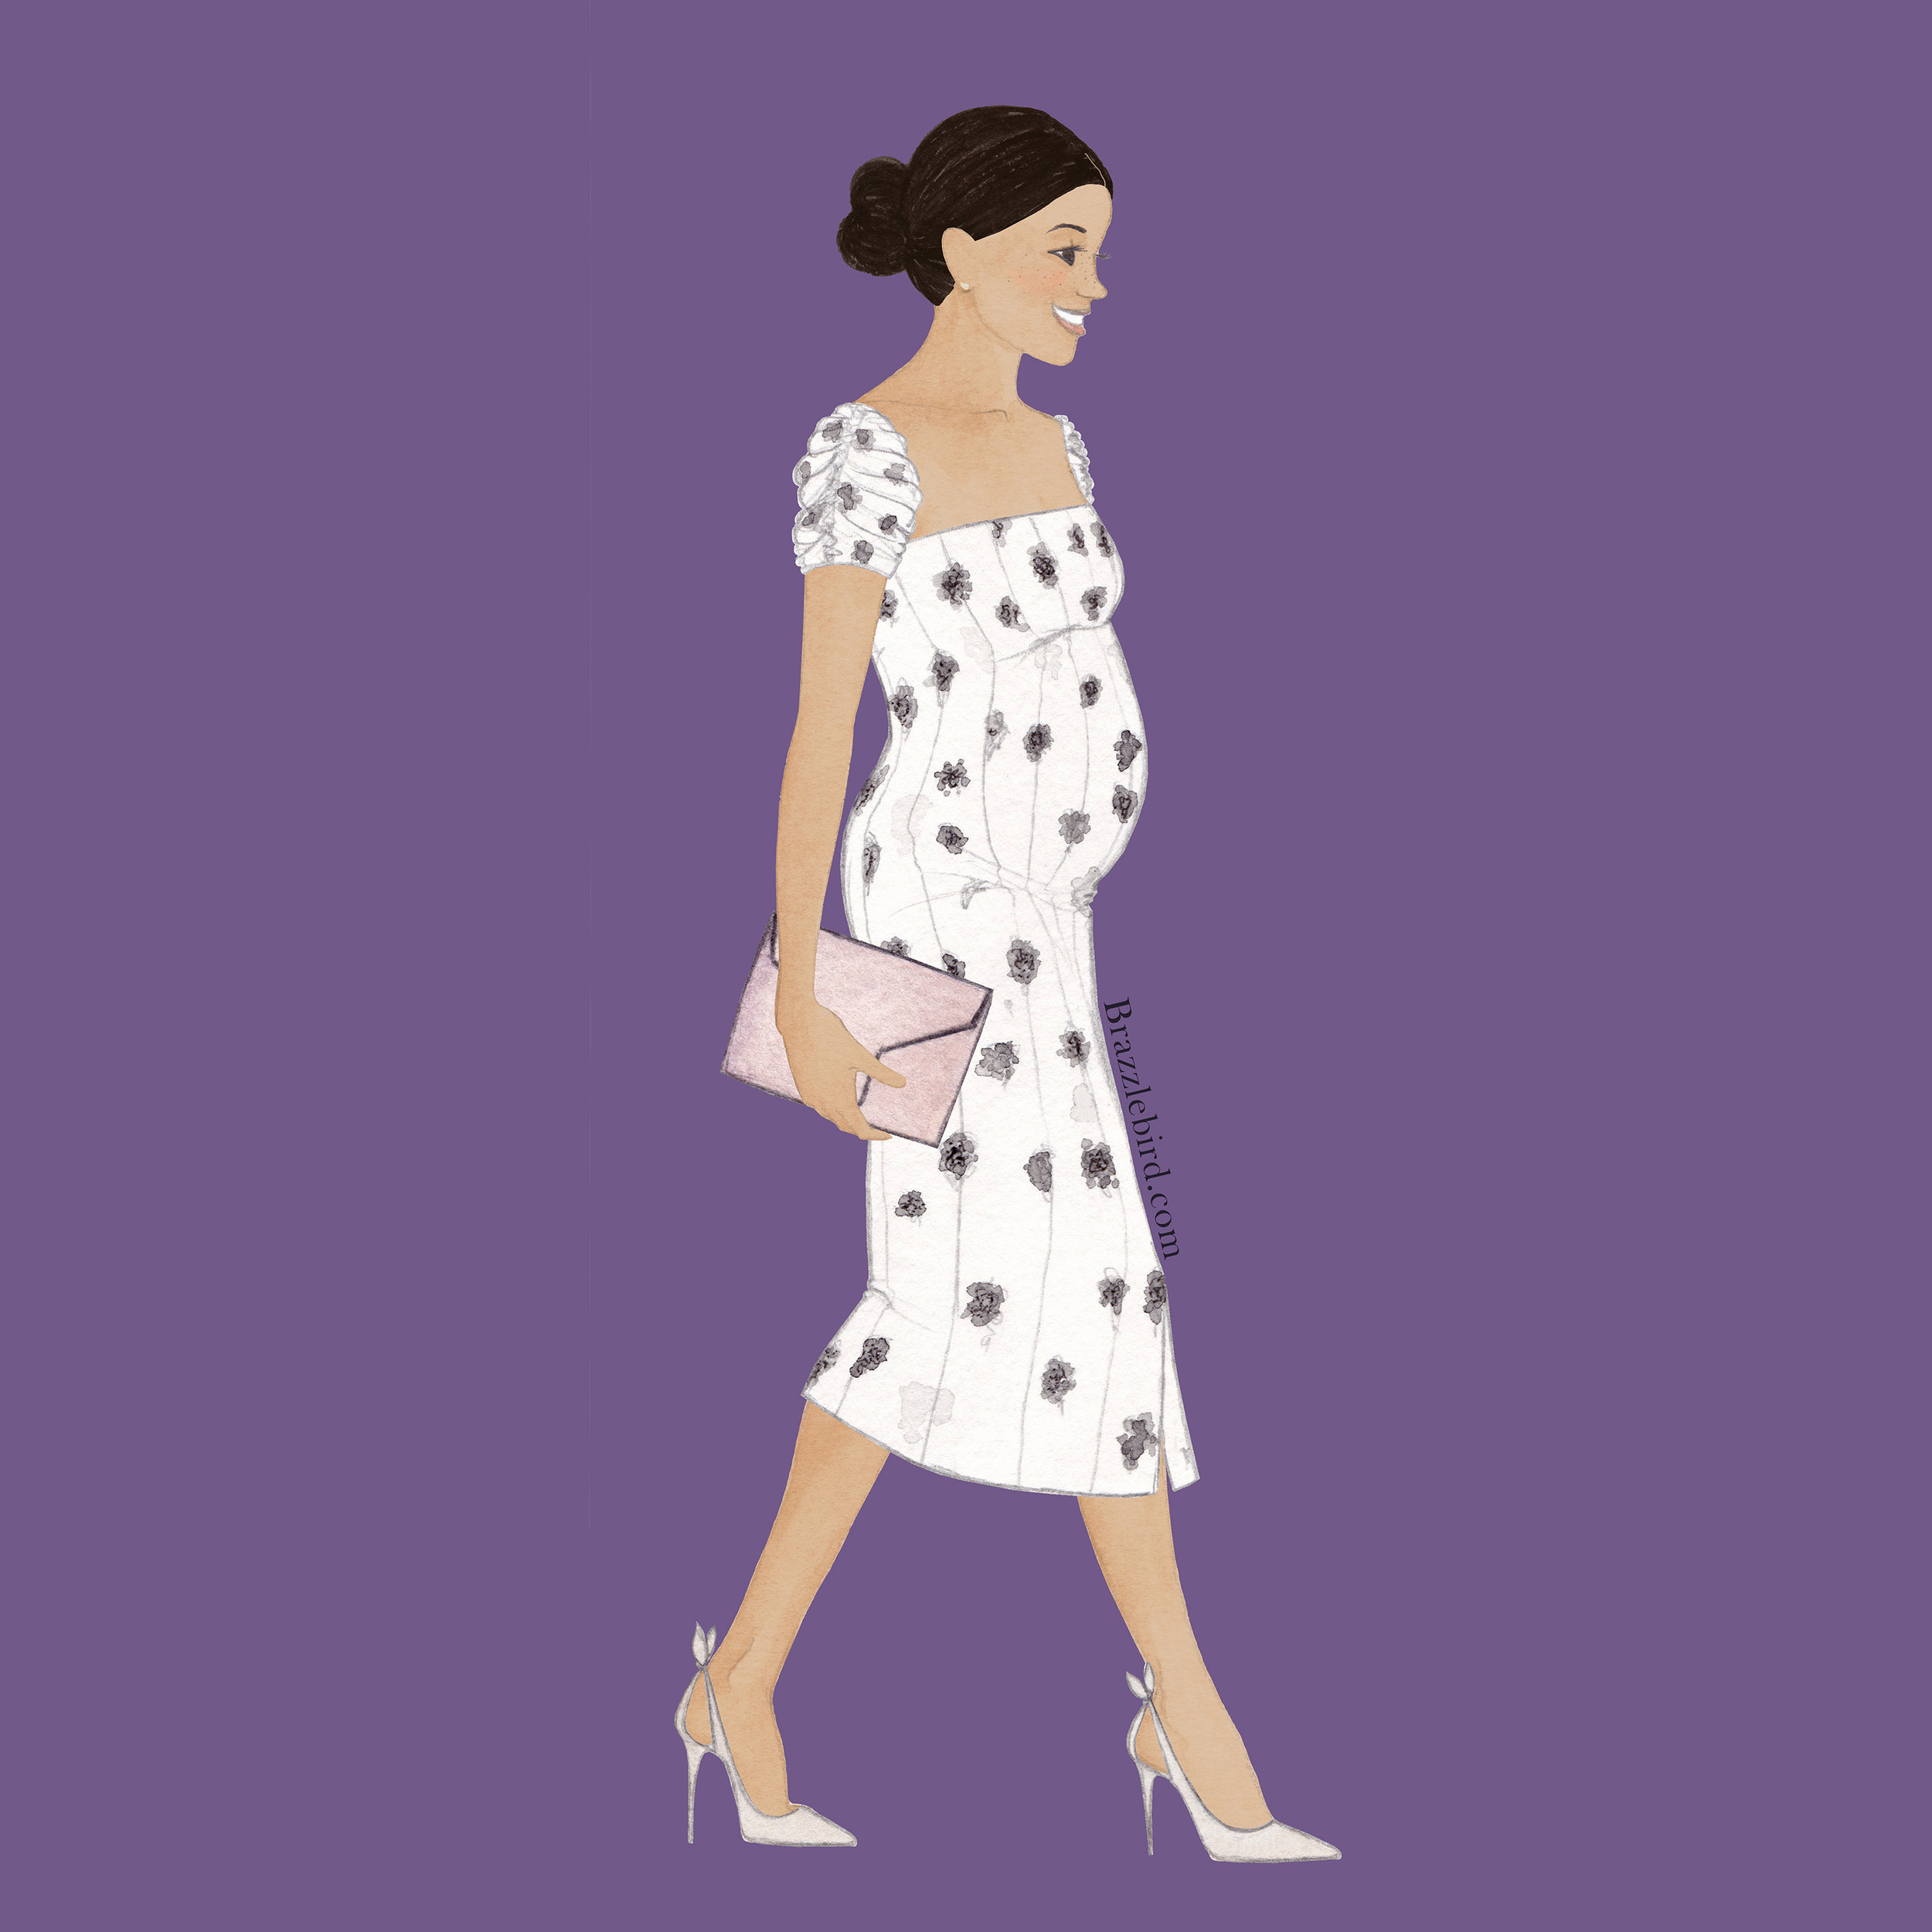 Brazzlebird Meghan Markle Brinsworth House Brock Collection Fashion Illustration